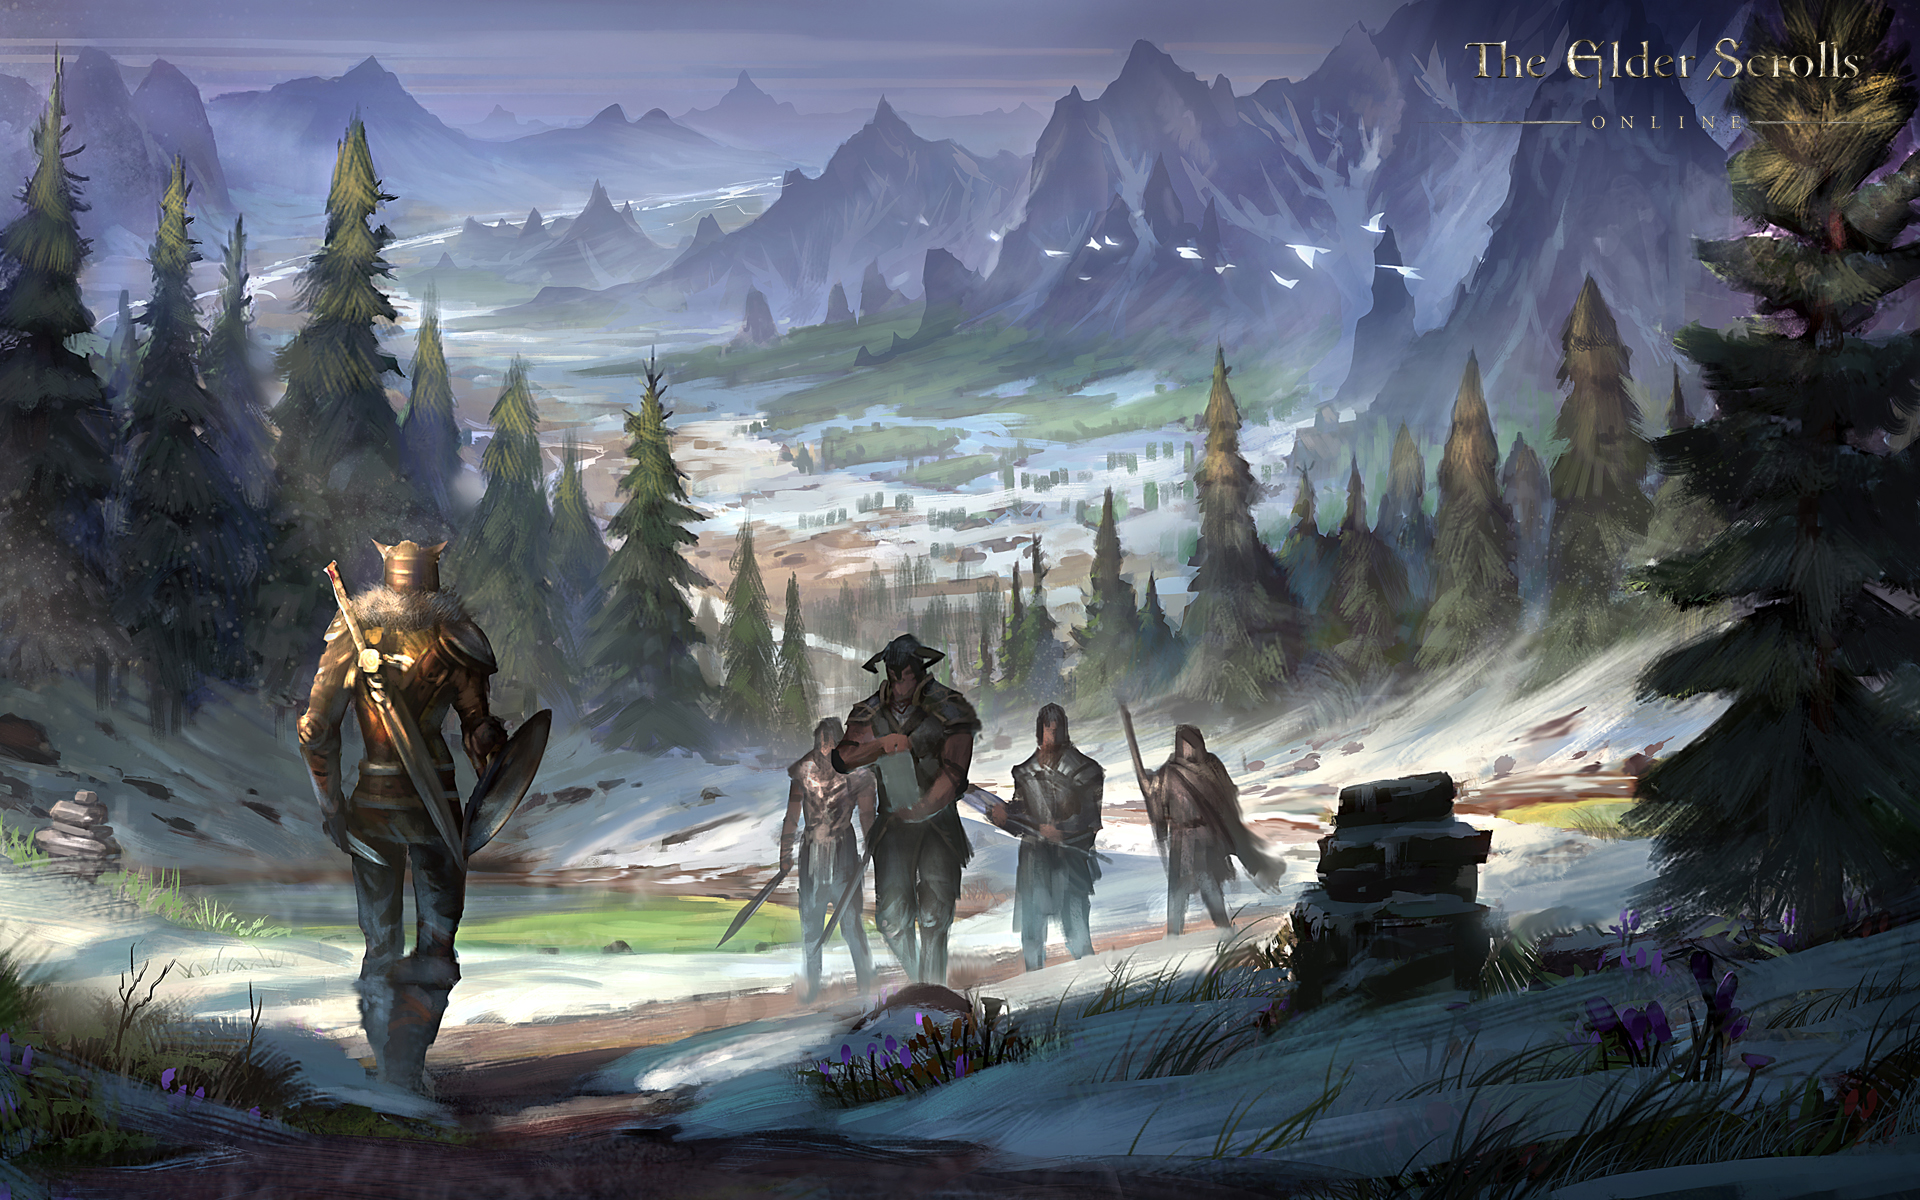 Elder Scrolls 6 Wallpaper: Wallpapers » Page 13 » The Elder Scrolls: Fan Site